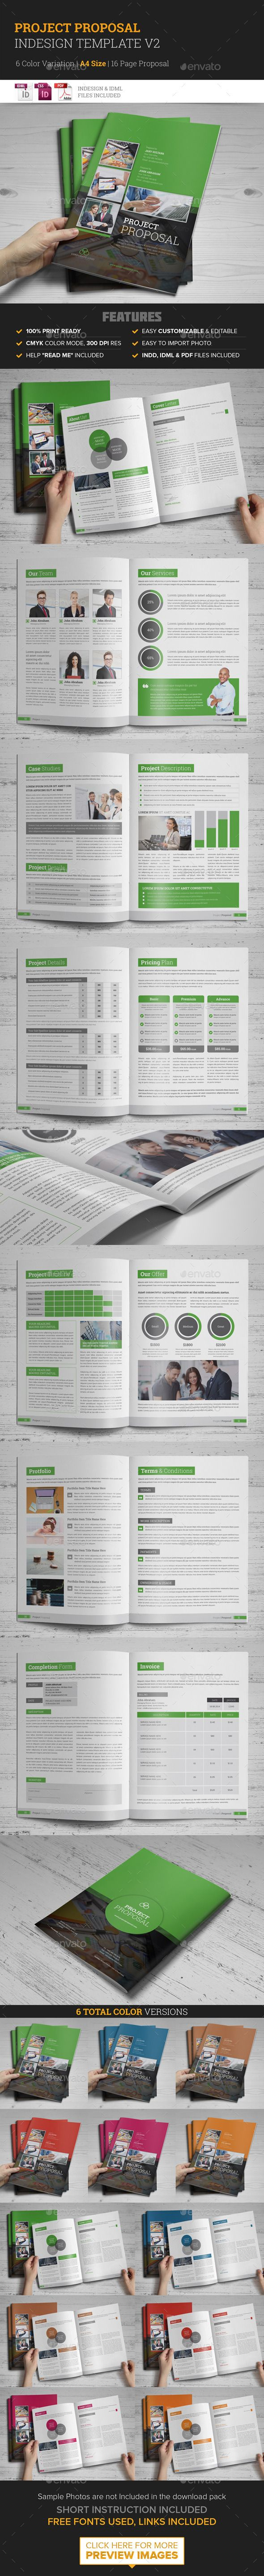 Project Proposal InDesign Template Download httpgraphicrivernetitem